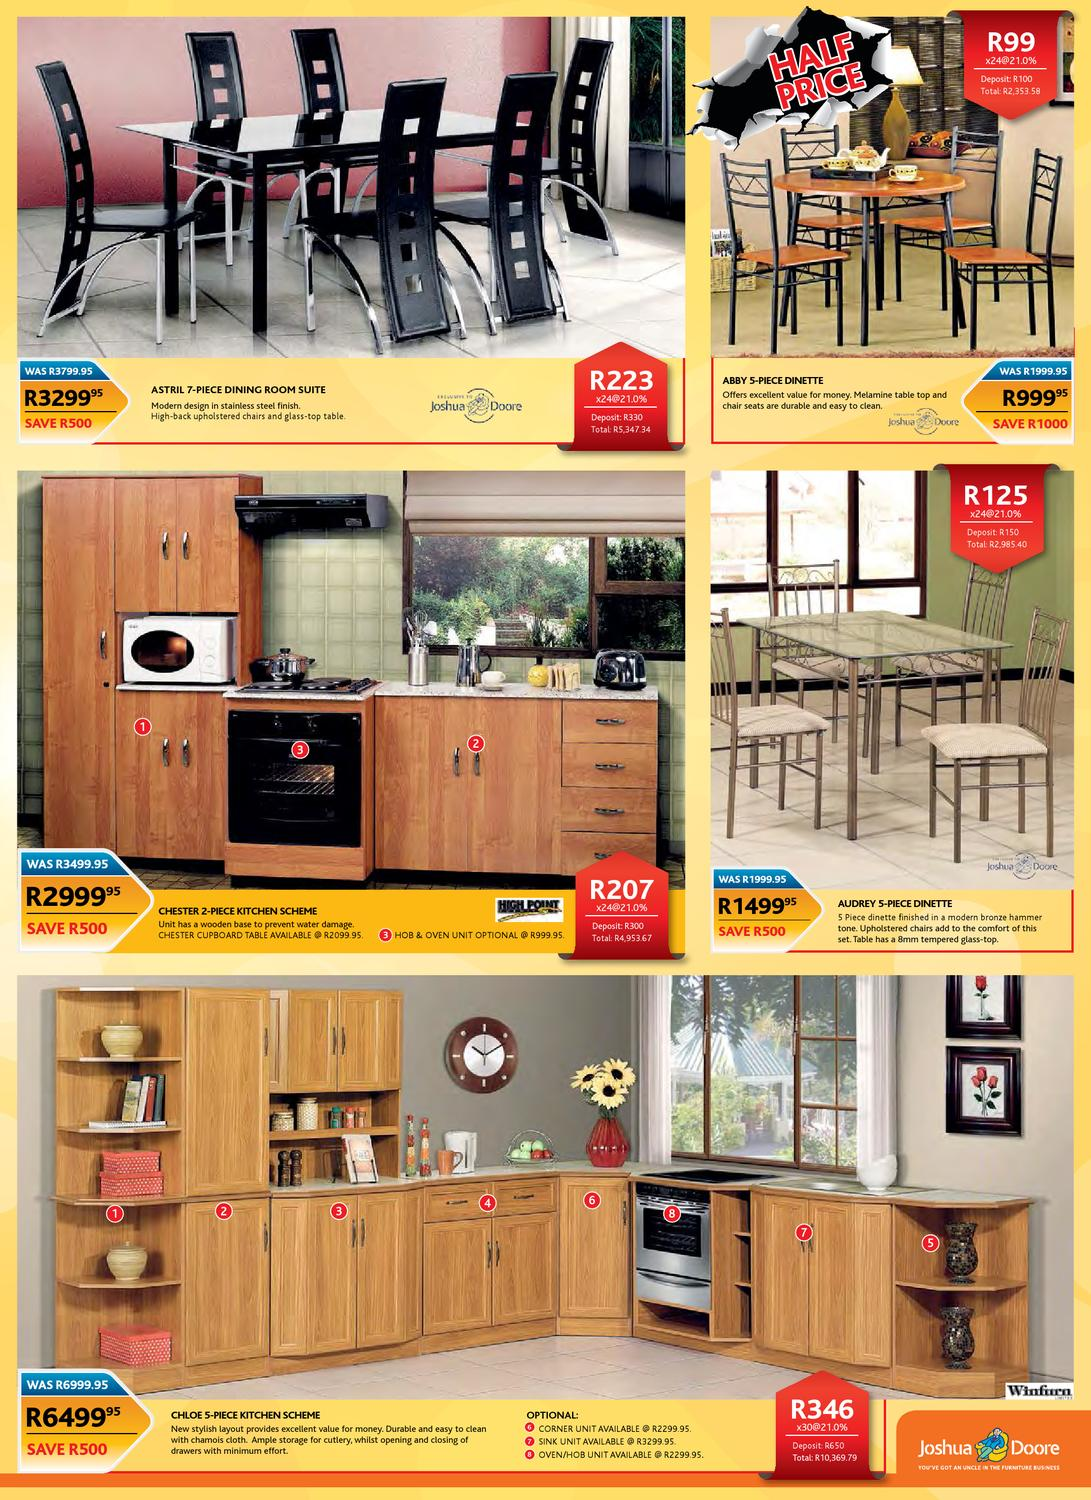 3 piece kitchen table contractor nj joshua doore catalogue by jd group - issuu